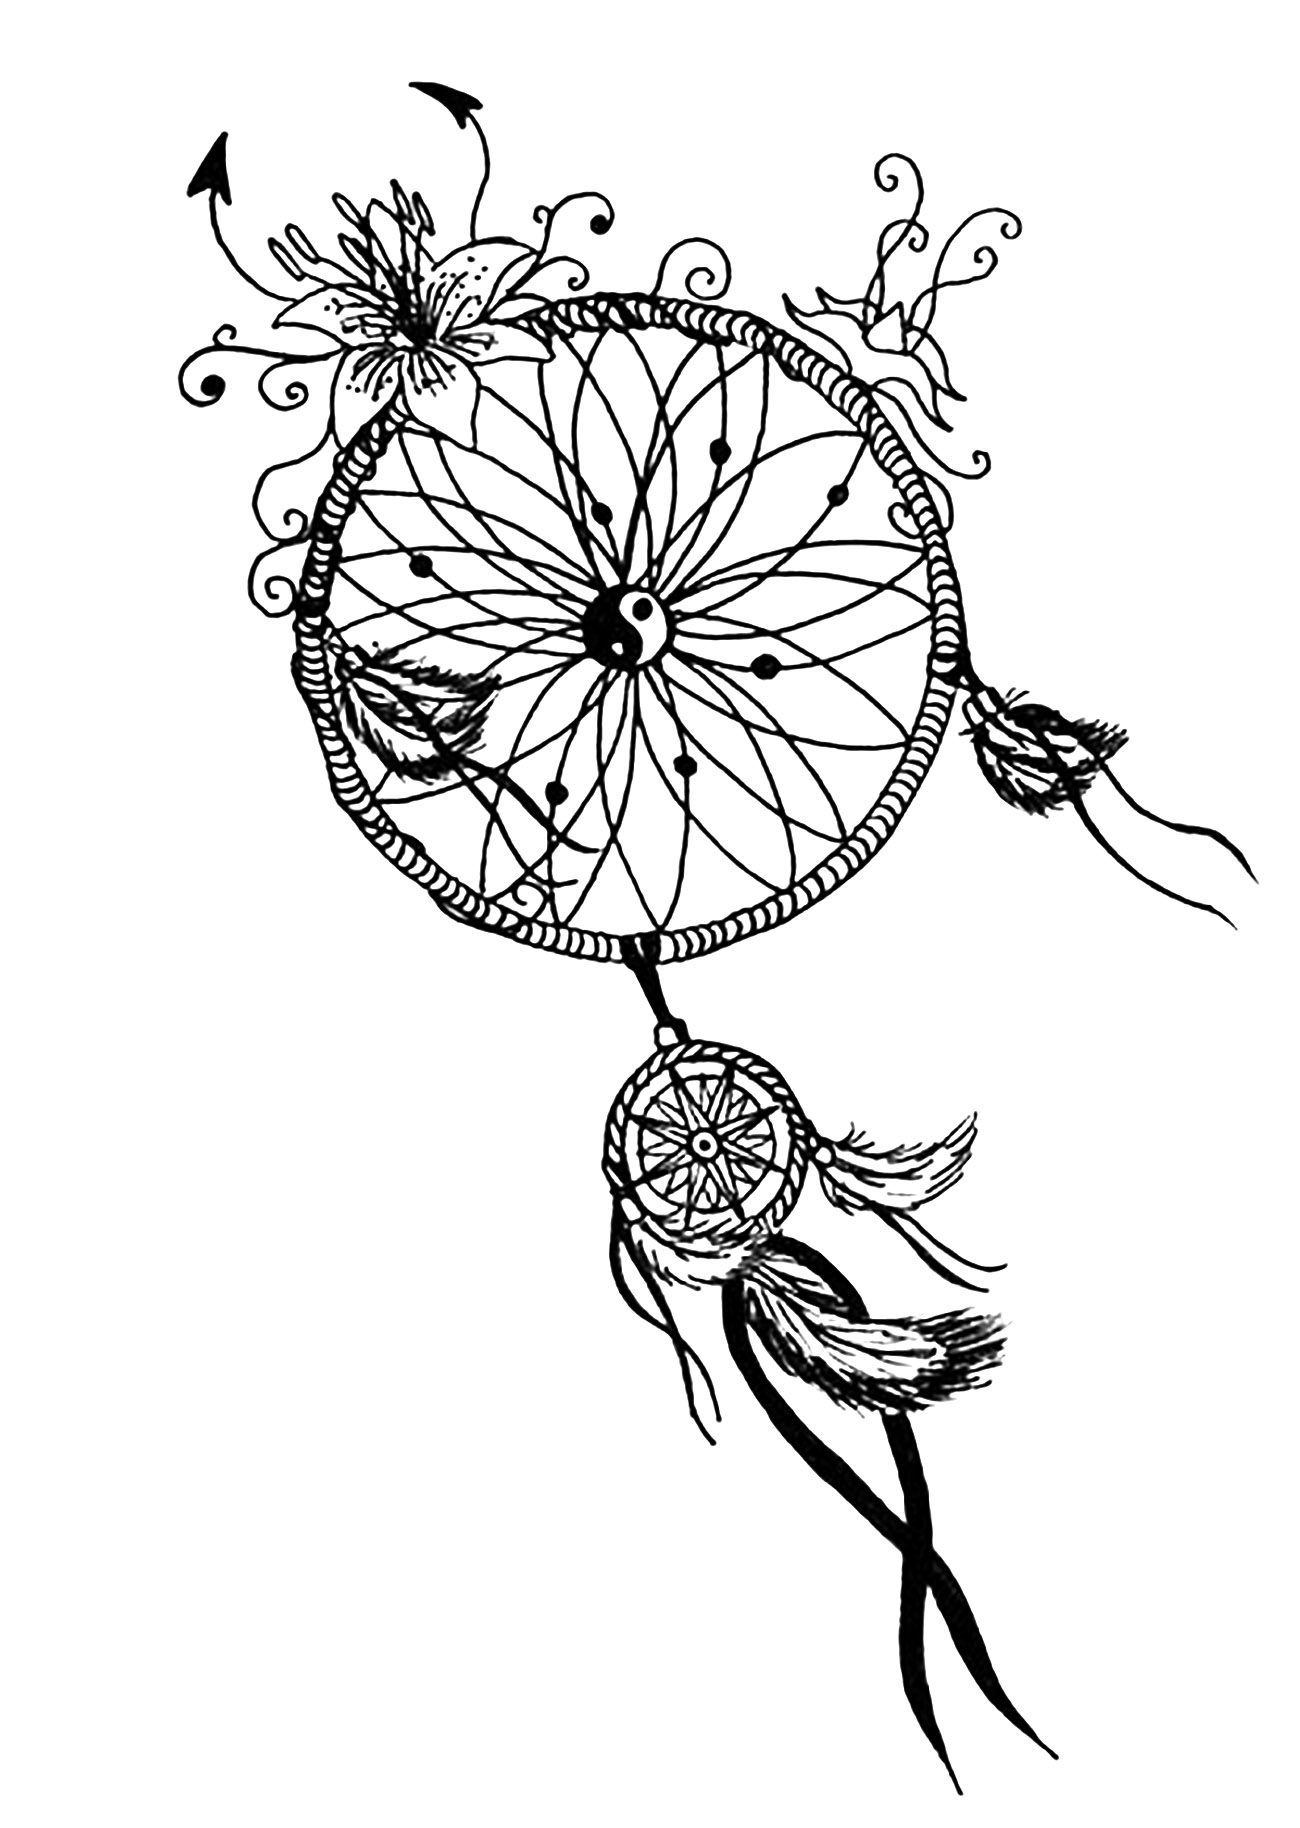 mandala to download free dreamcatcher mandalas coloring pages